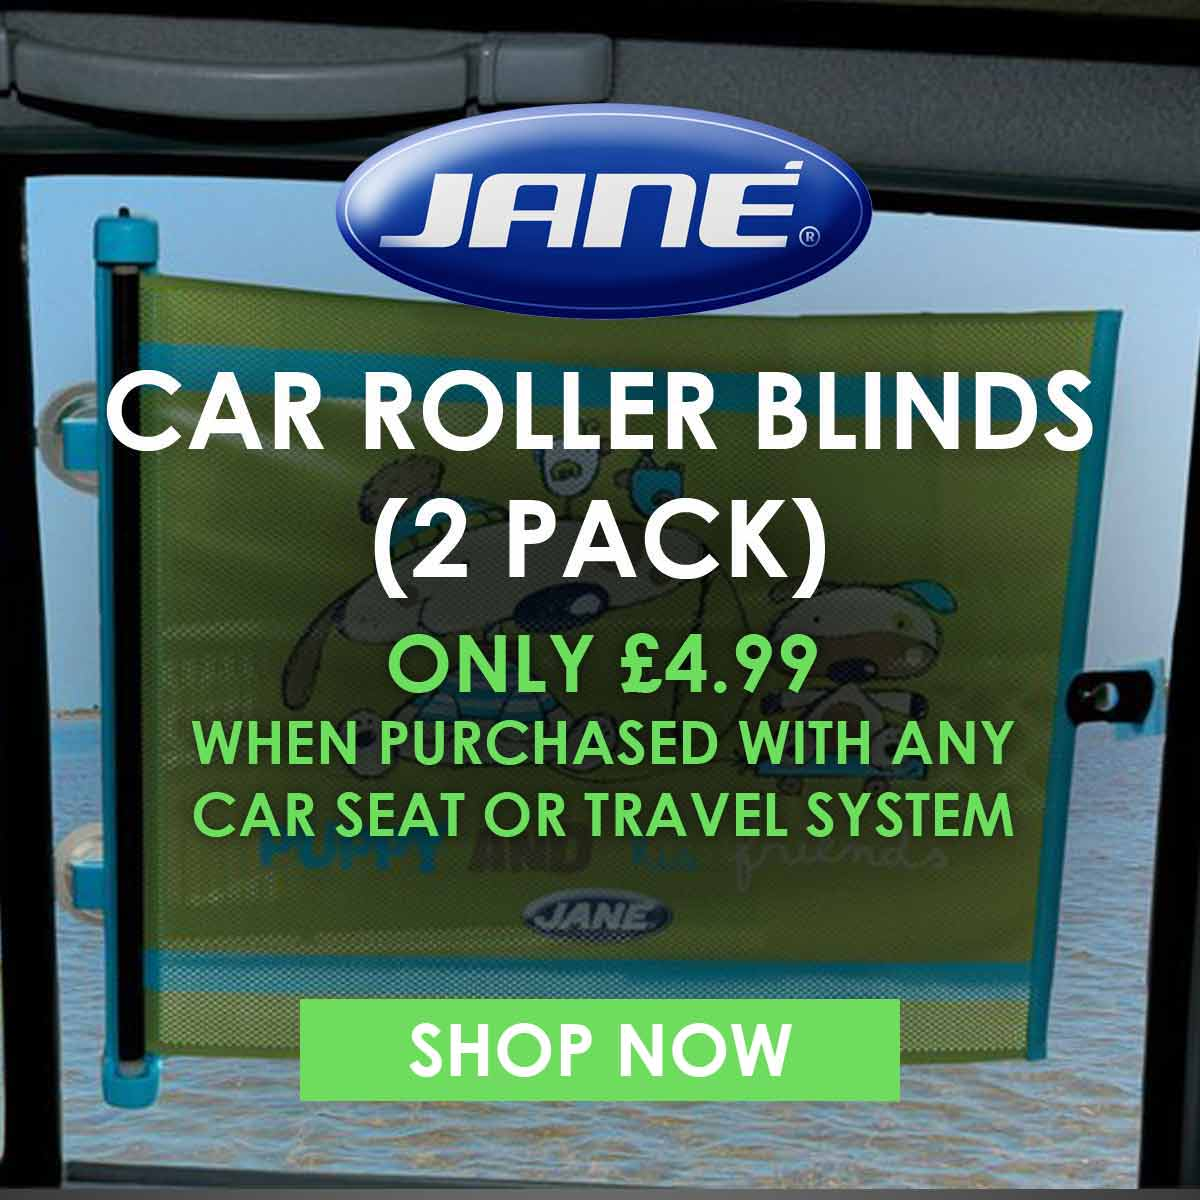 Jane roller blinds